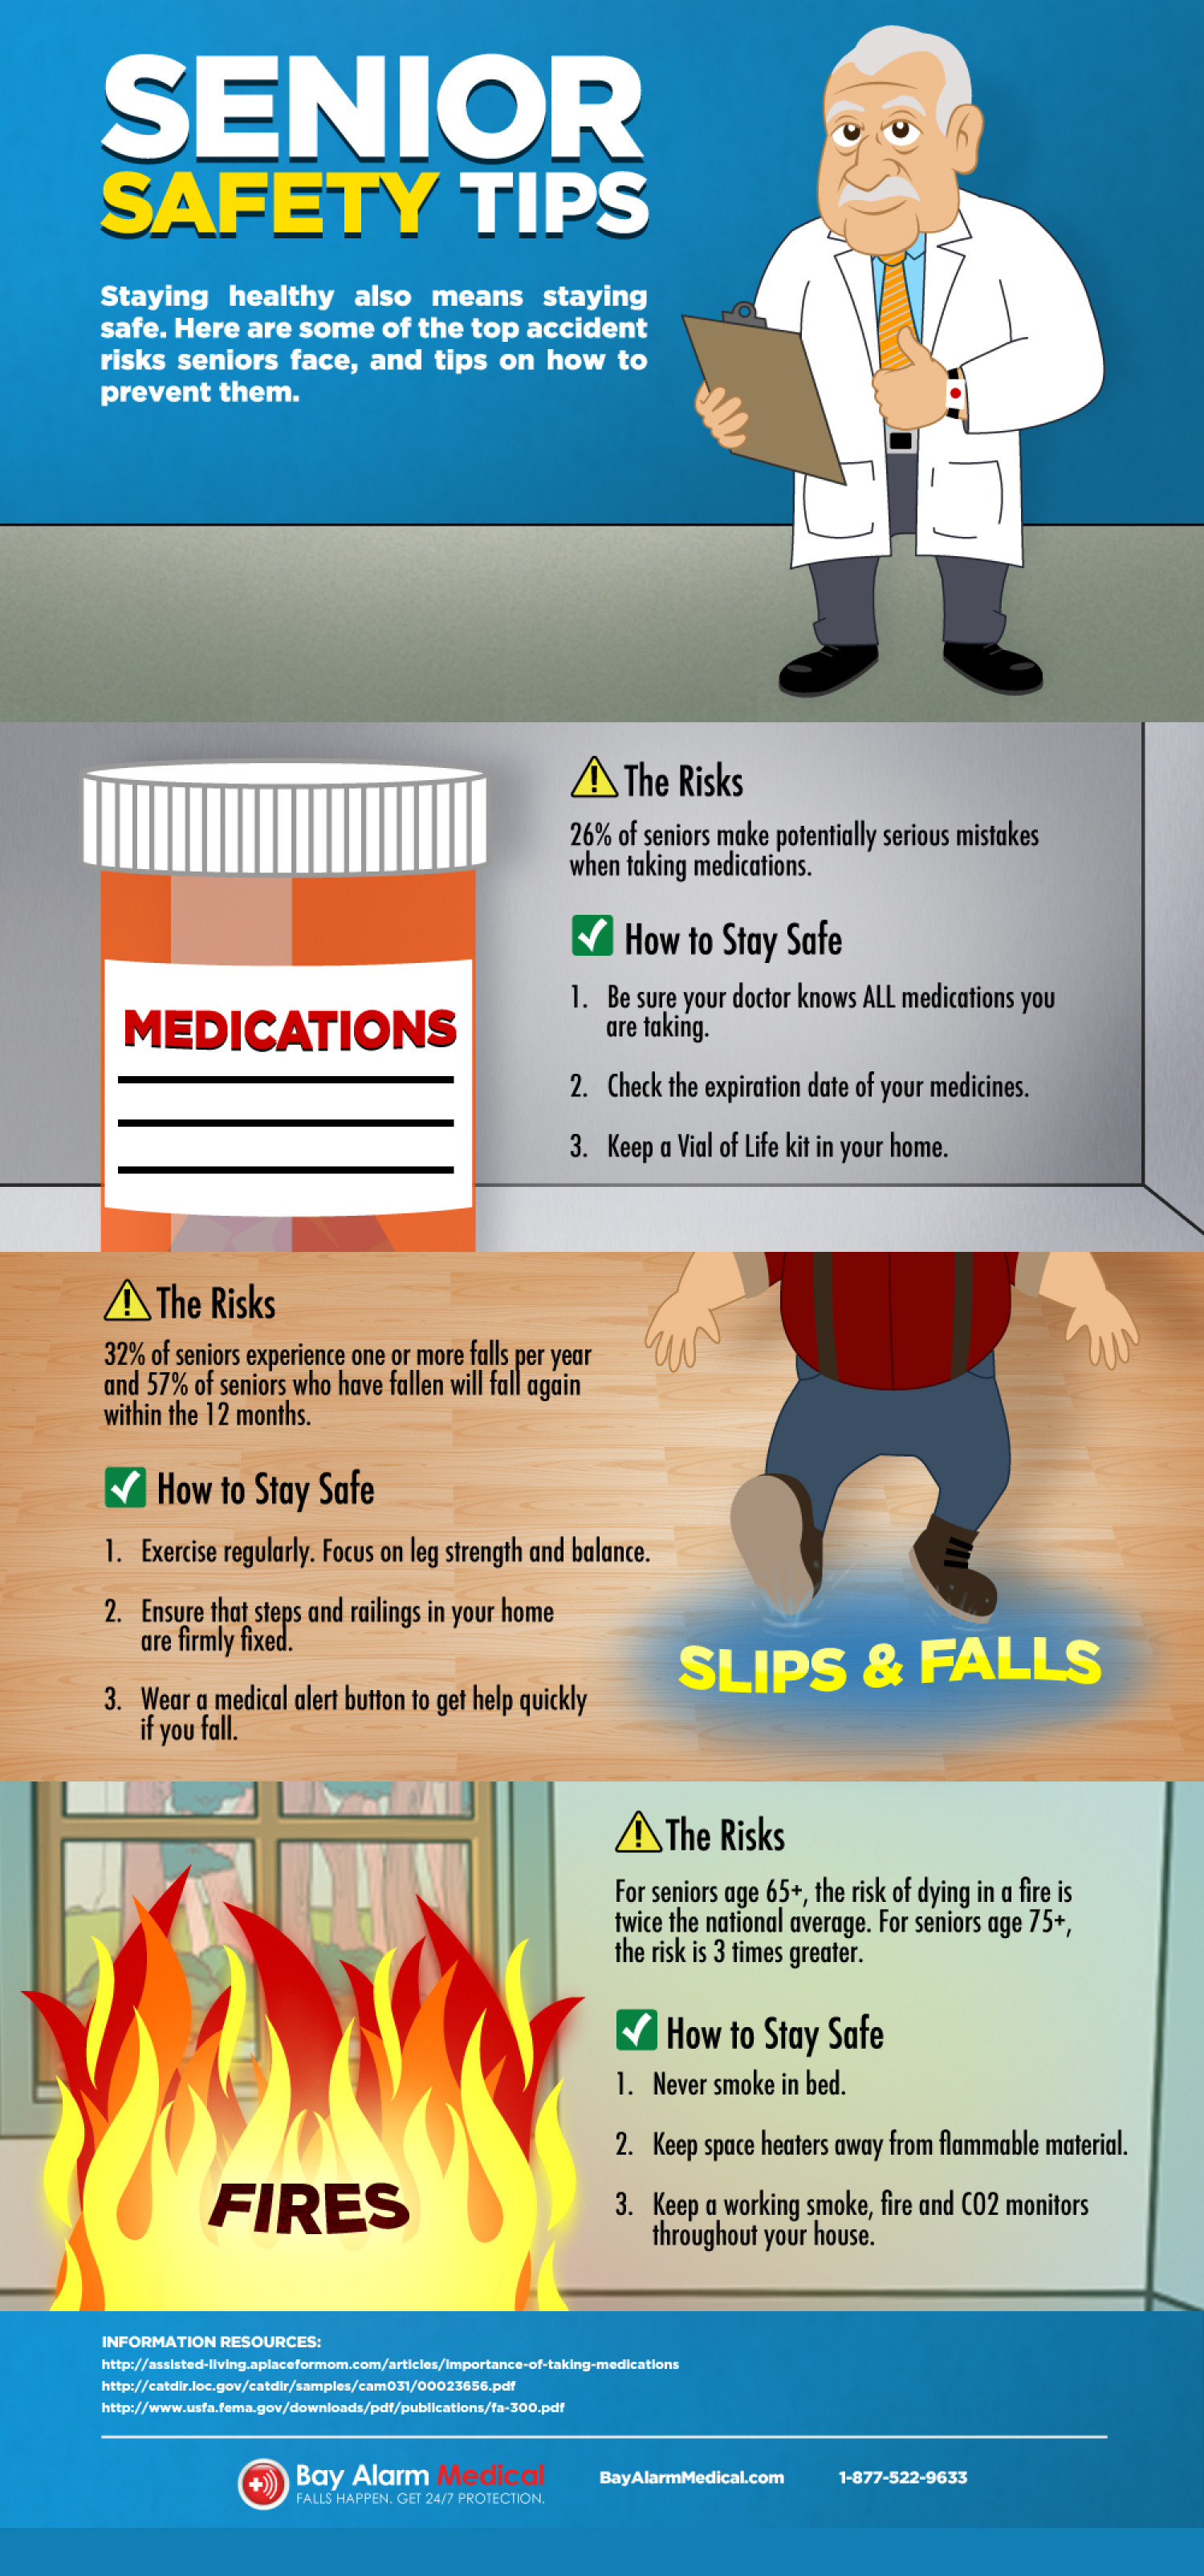 senior safety risks amp tips for staying safe visually